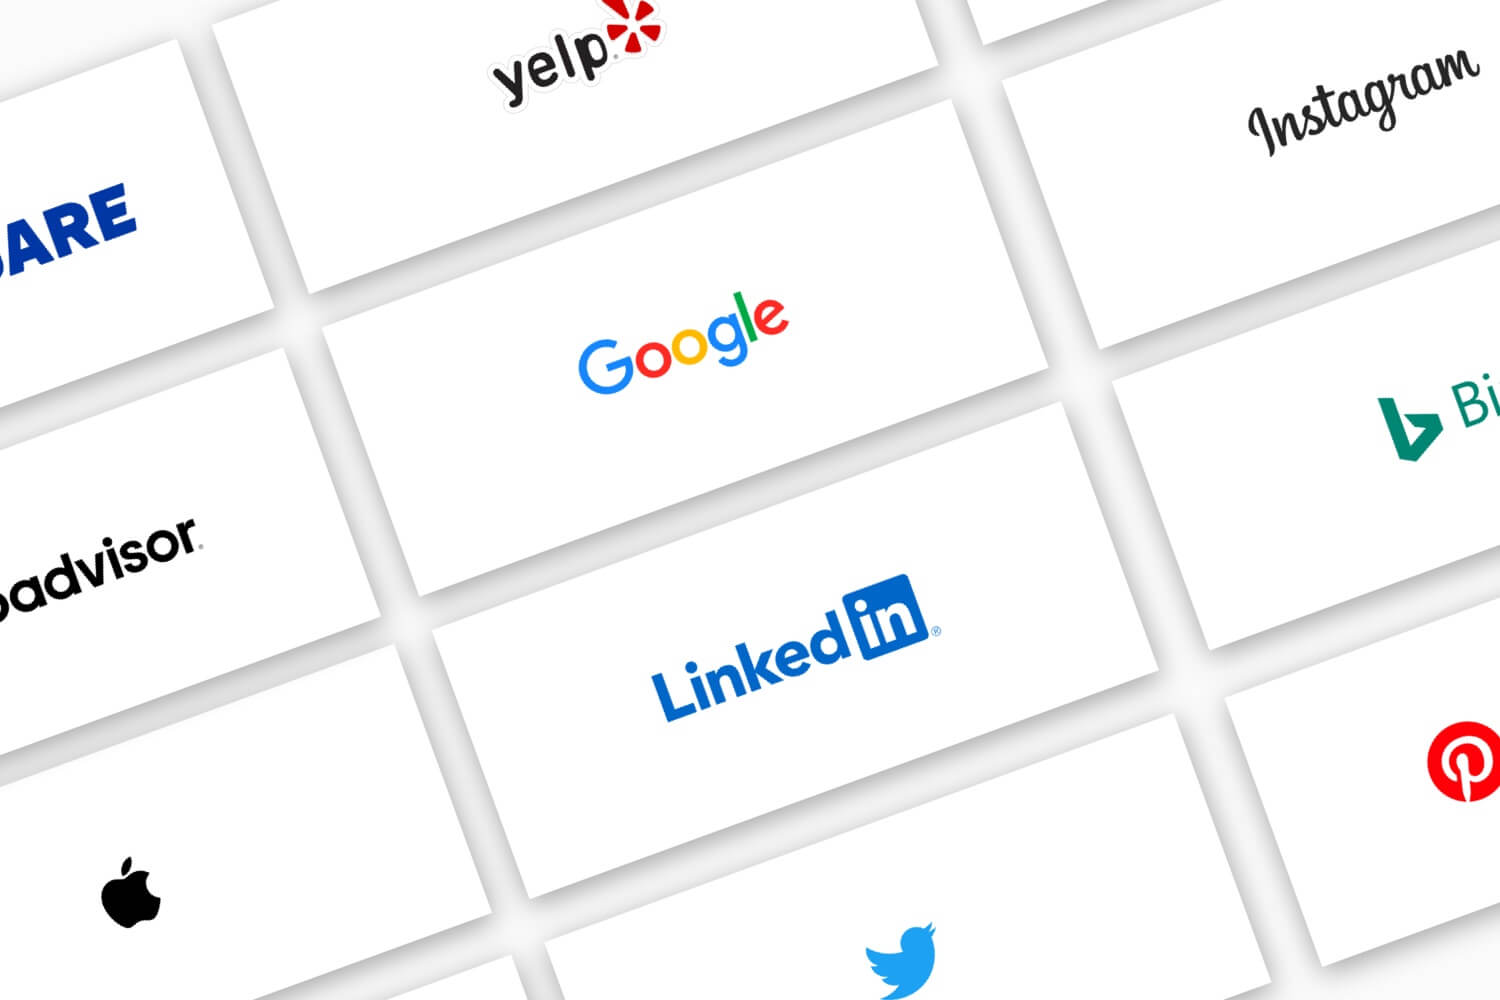 Logos for several several business listings, including Google, Facebook, Yelp, Apple, etc.